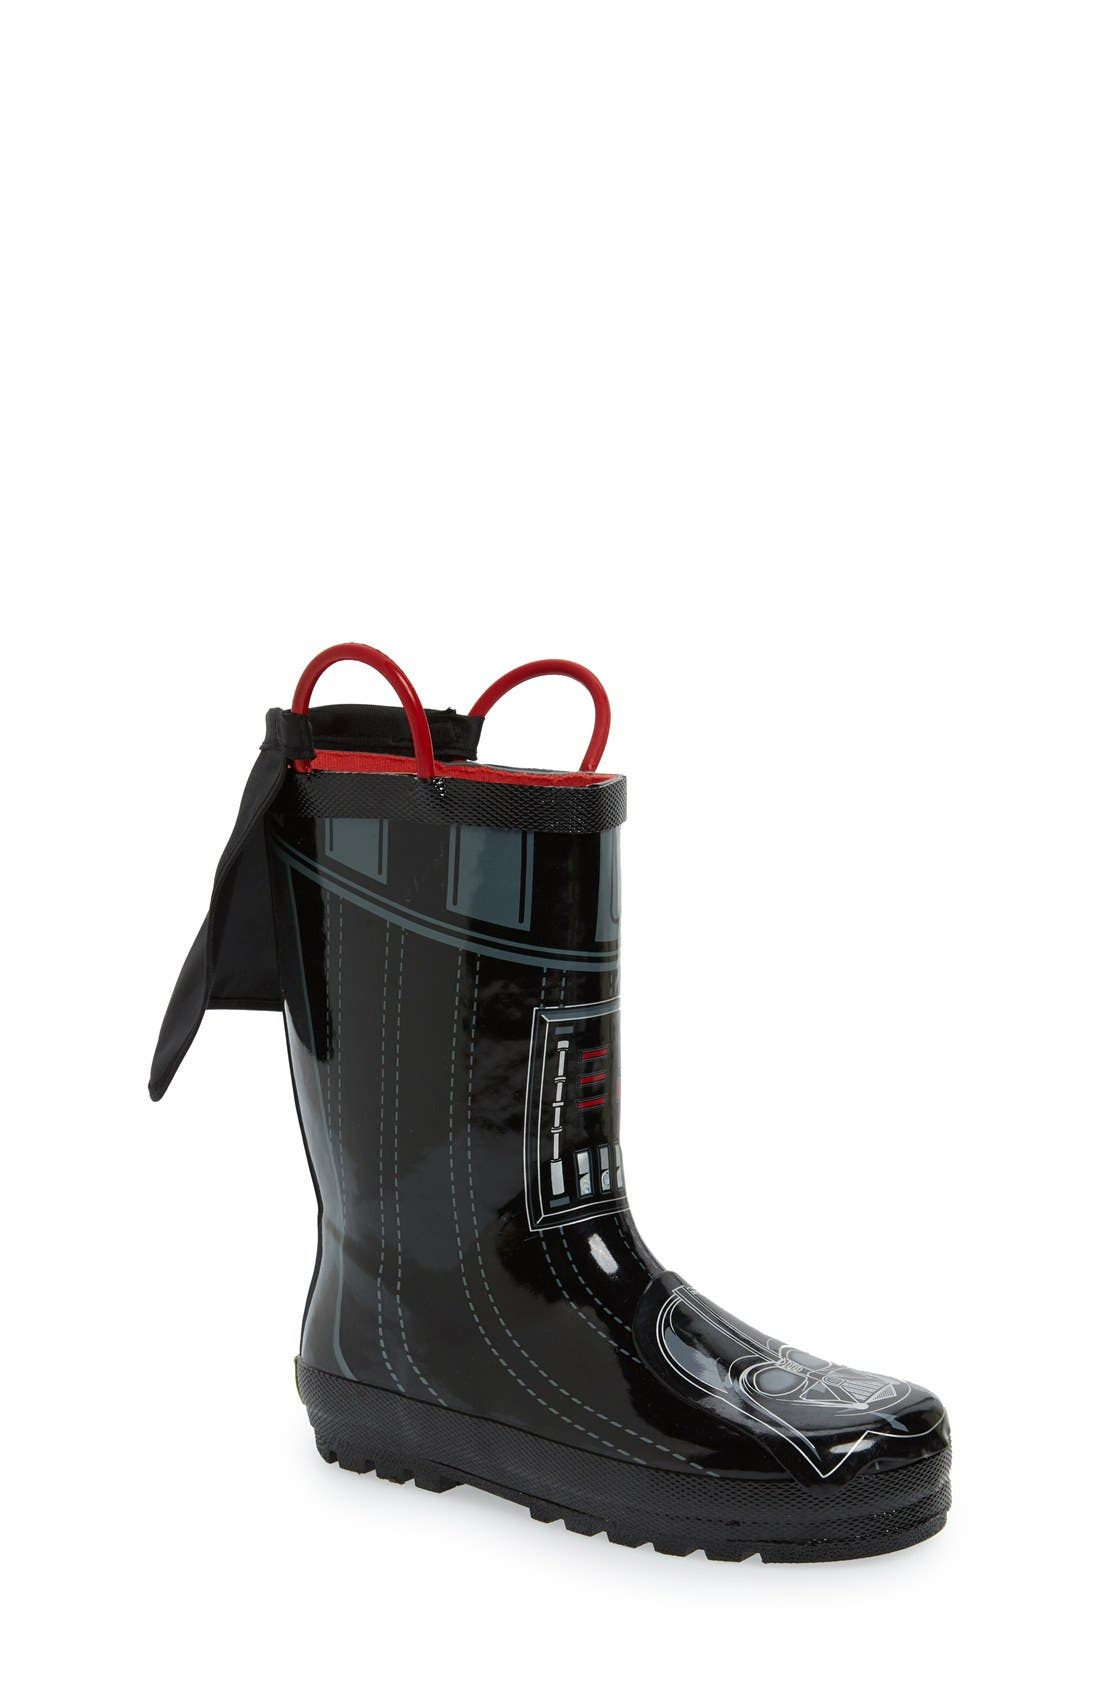 Western Chief 'Star Wars™ - Darth Vader' Waterproof Rain Boot (Walker, Toddler, Little Kid & Big Kid)